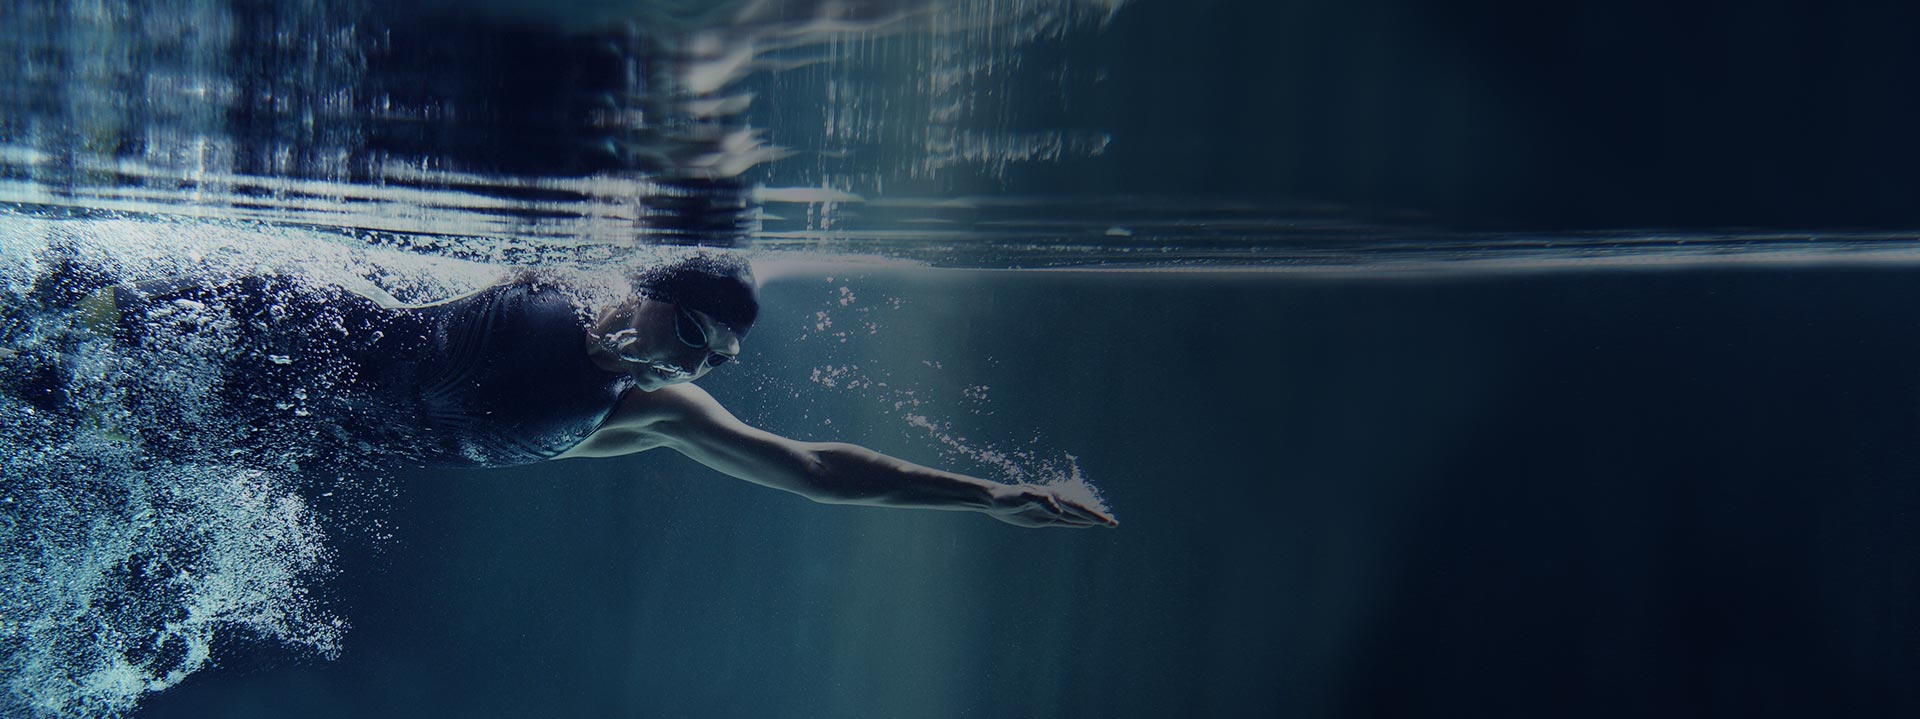 competitive swimmer underwater